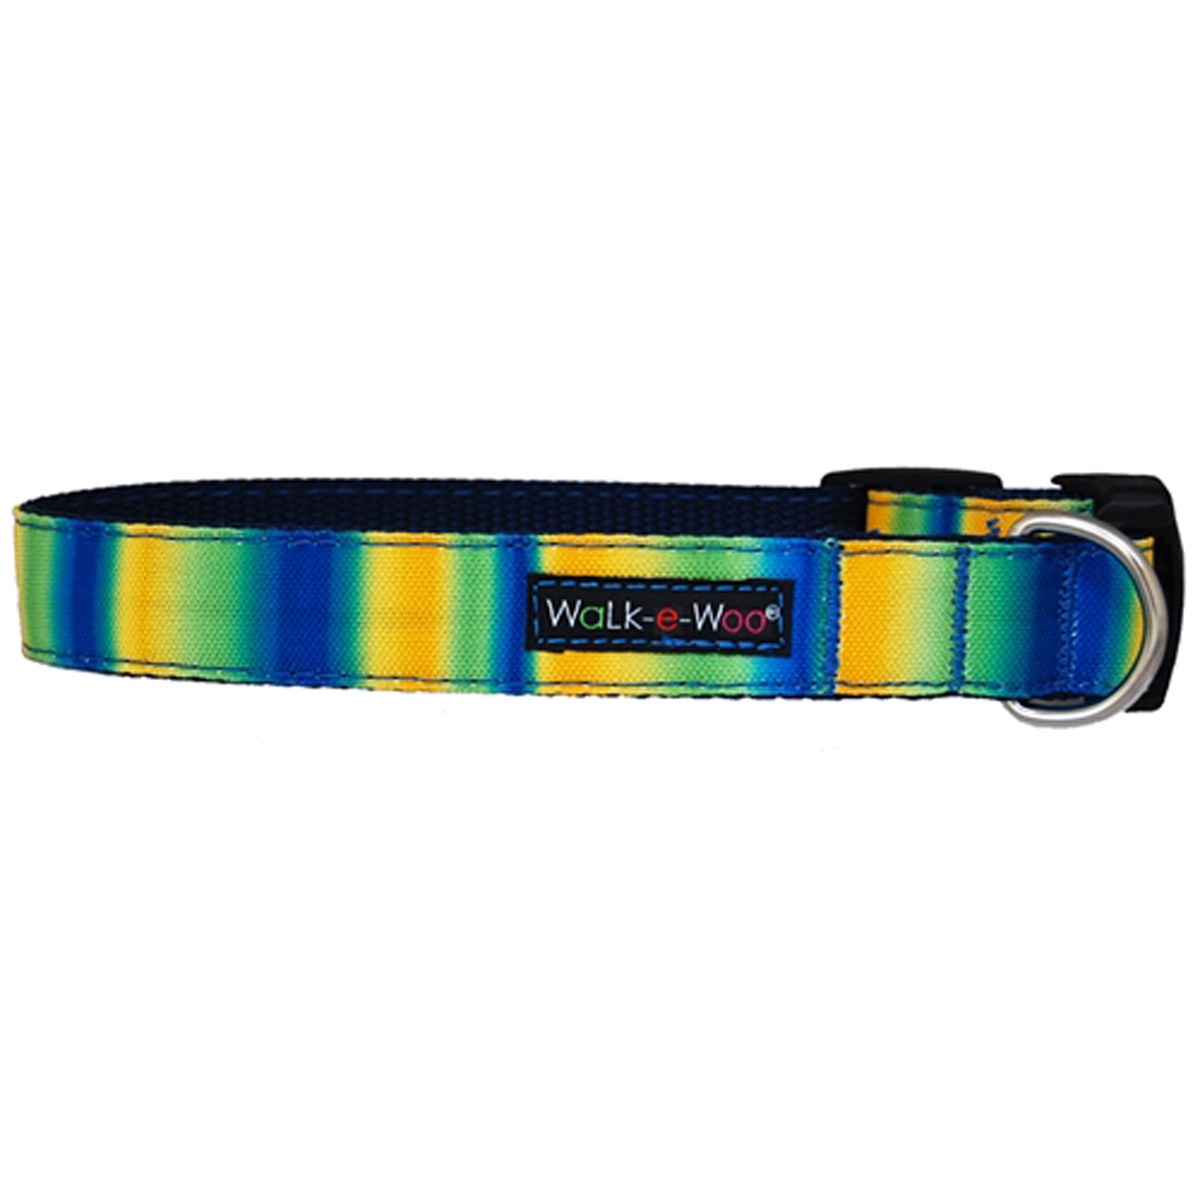 WaLk-e-Woo Tie Dye Dog Collar - Blue/Green